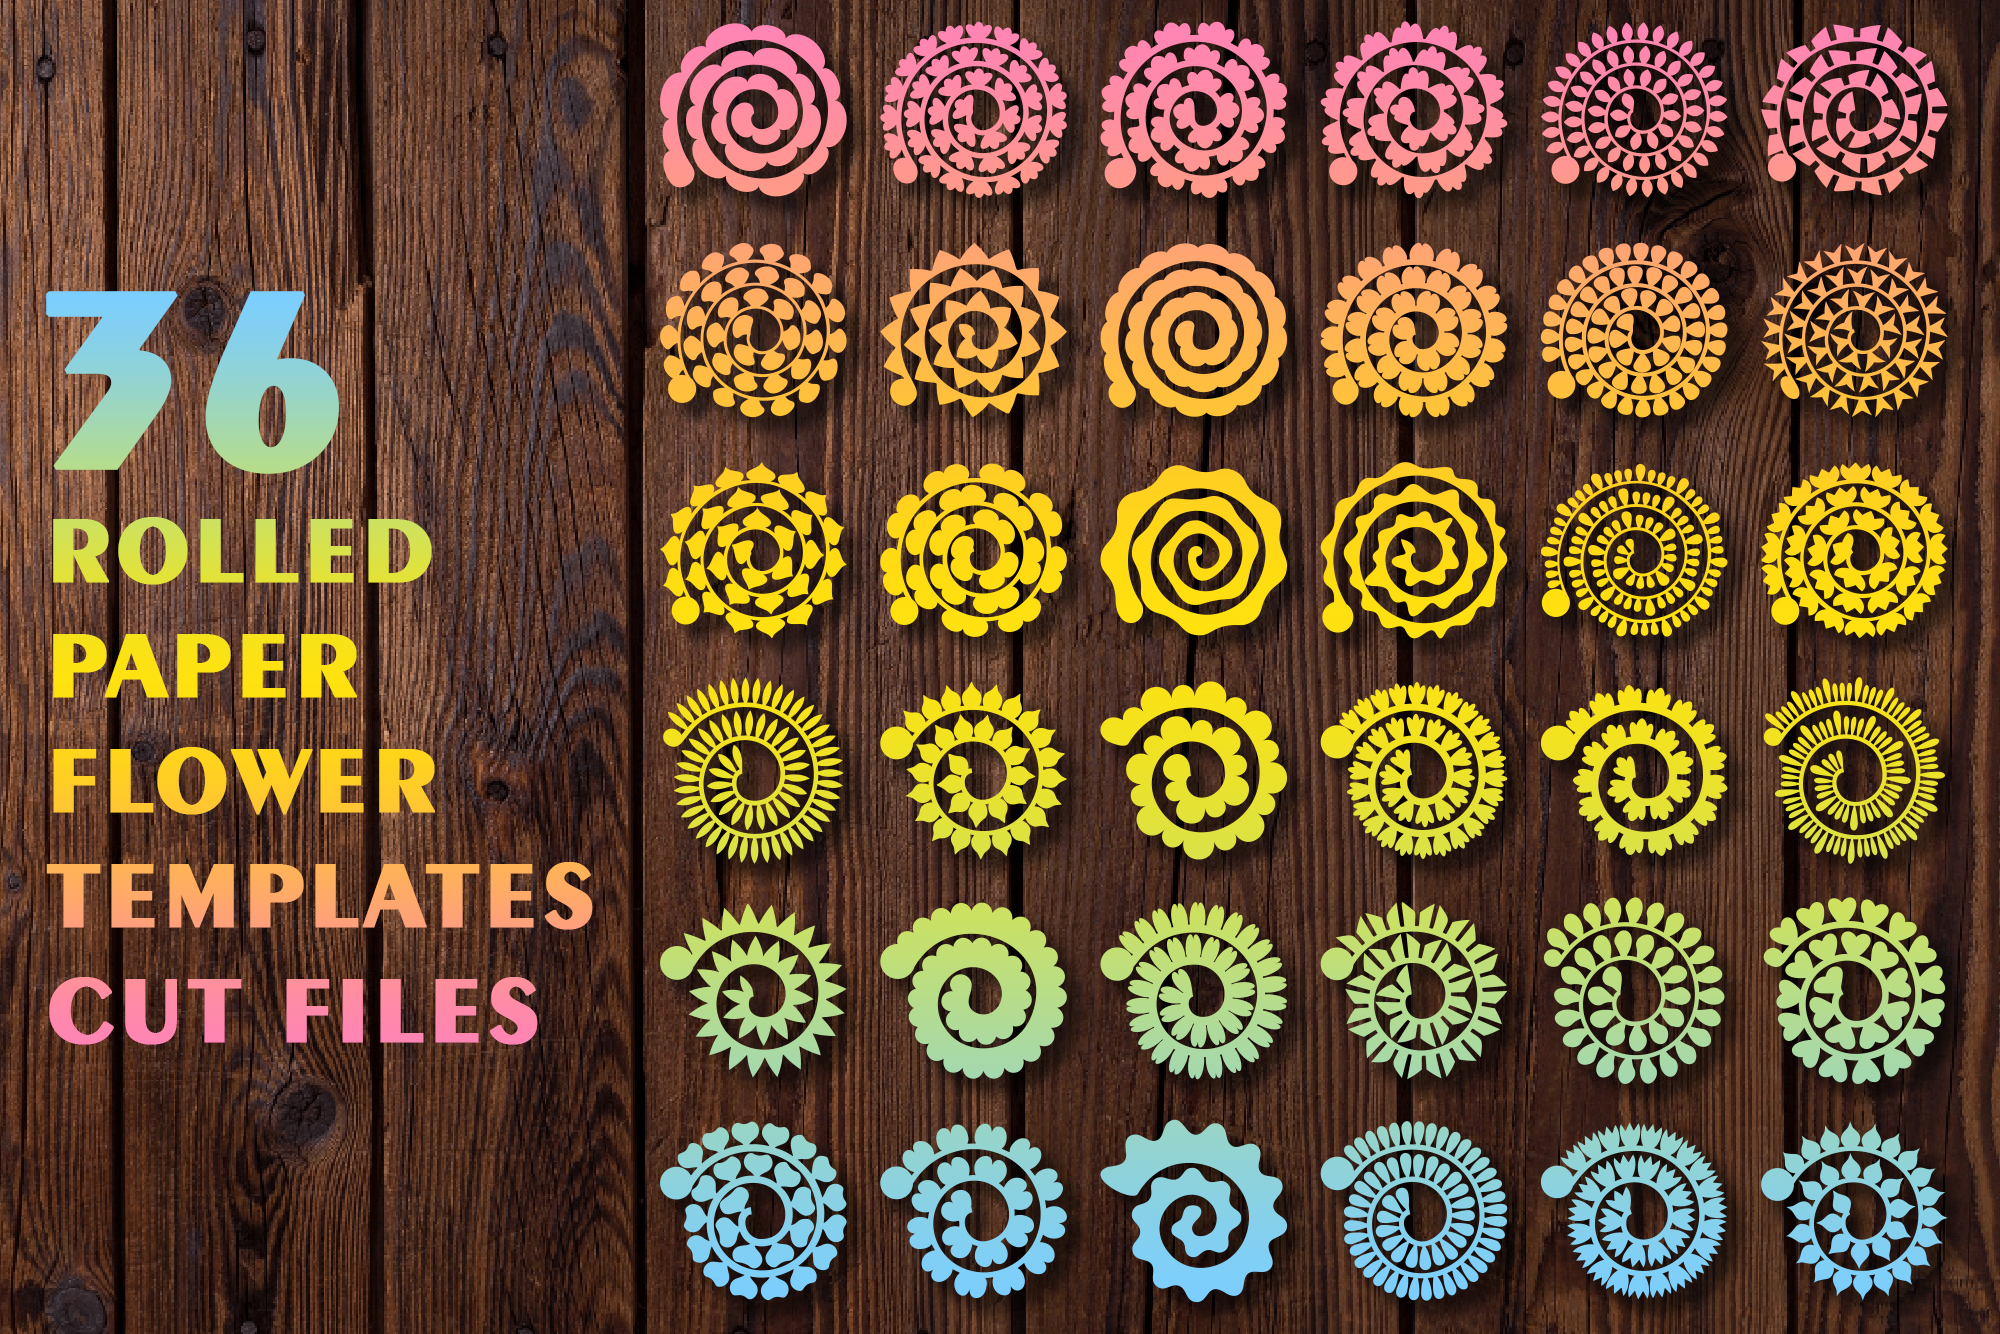 Rolled Paper Flower Templates Cut Files SVG File